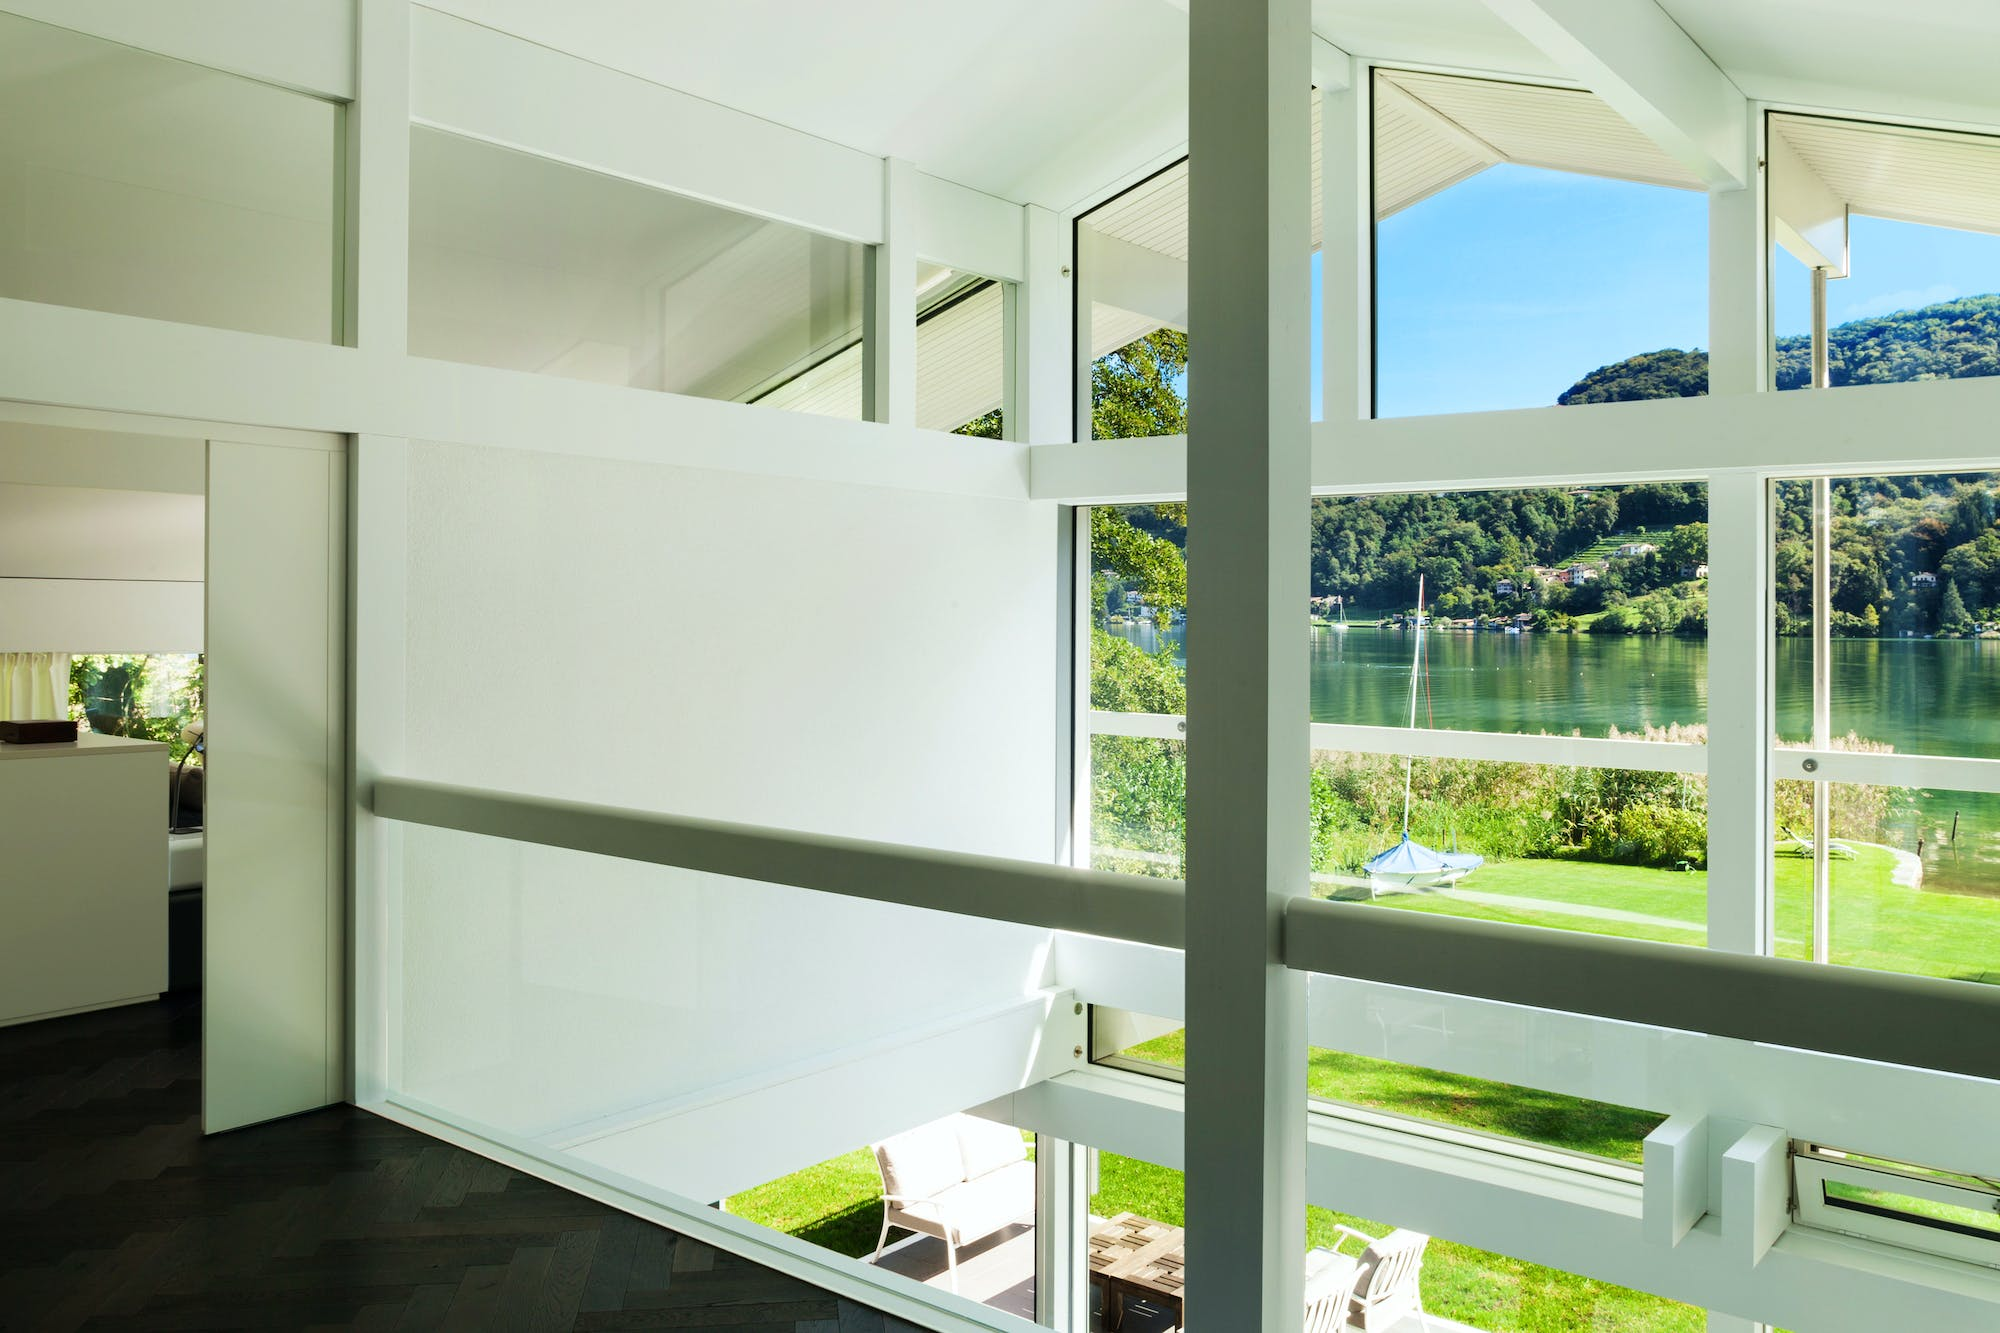 Home with tempered glass windows.